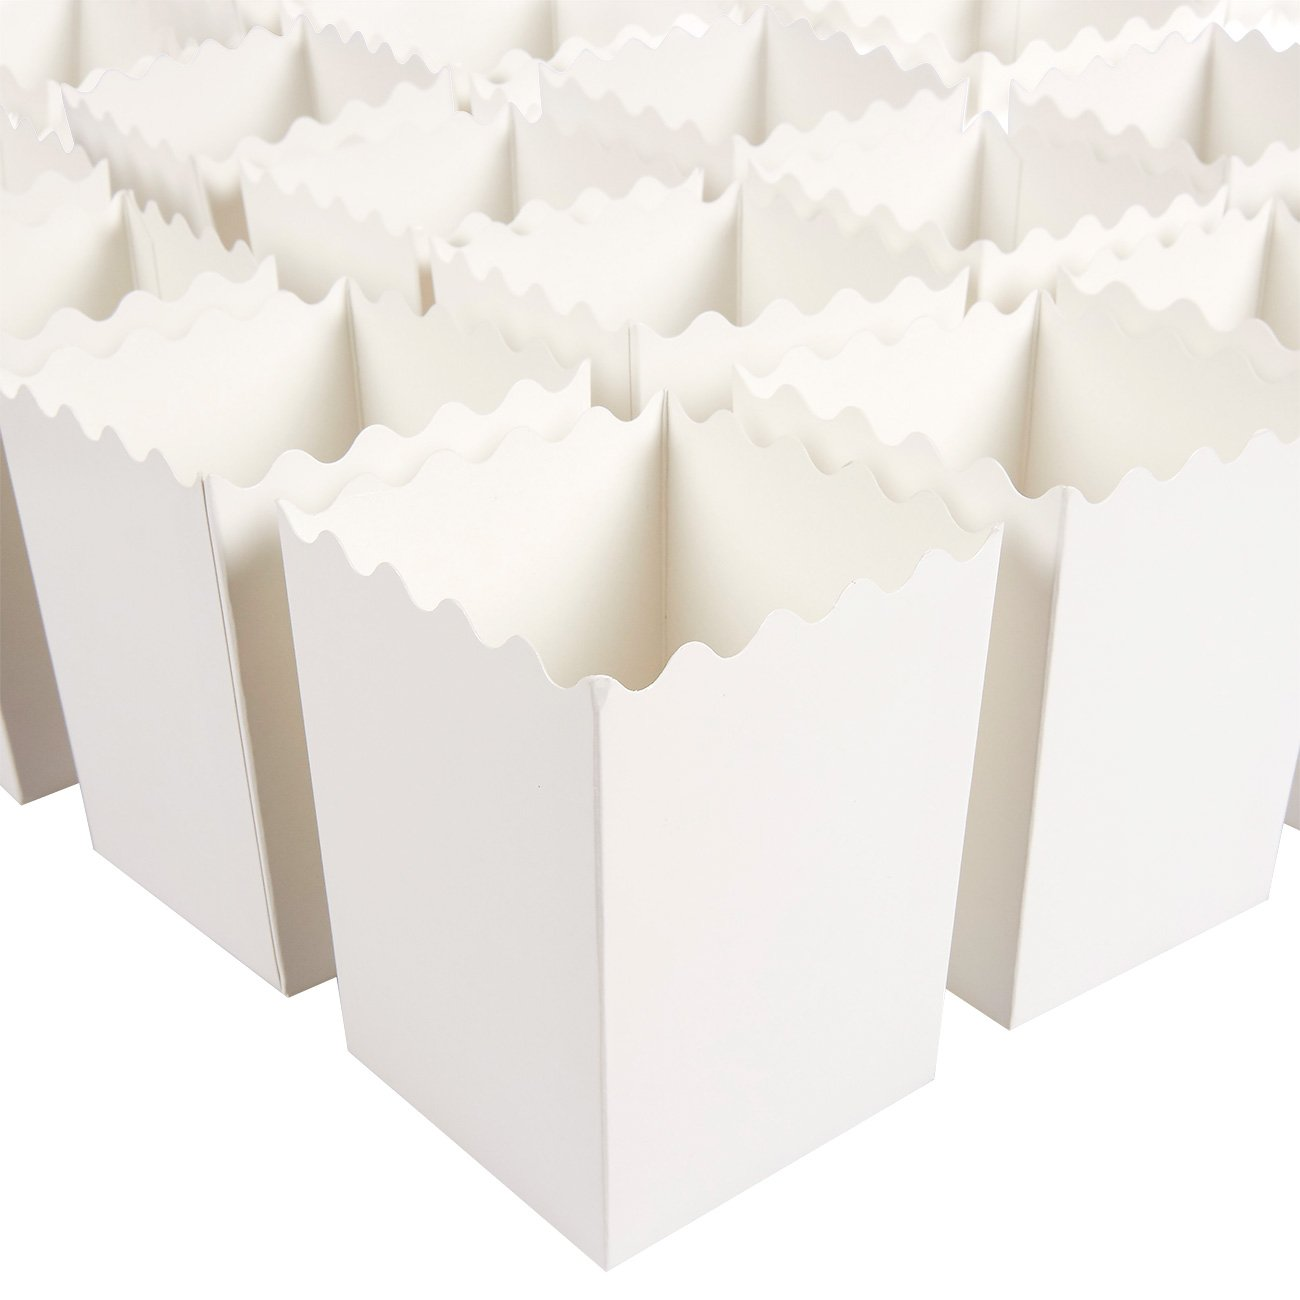 Set of 100 Popcorn Favor Boxes - 16oz Mini Paper Popcorn Containers, Popcorn Party Supplies for Movie Nights, Carnival Parties, Baby Showers and Bridal Showers White - 3 x 4 x 3 Inches